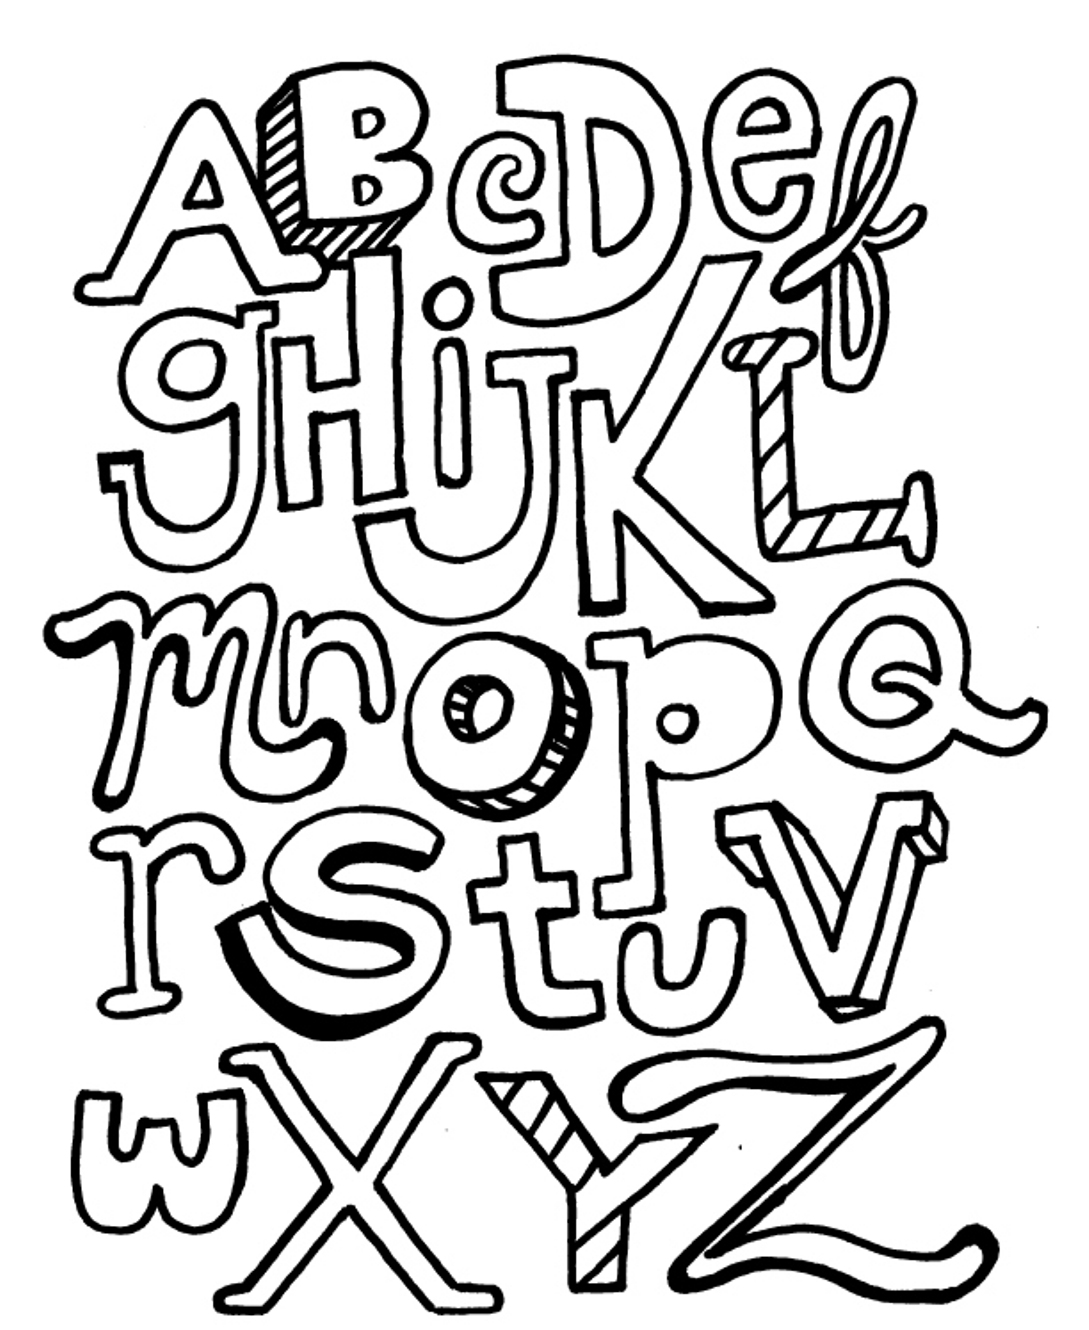 alphabet coloring book printable whole alphabet coloring pages free printable coloring home printable book coloring alphabet